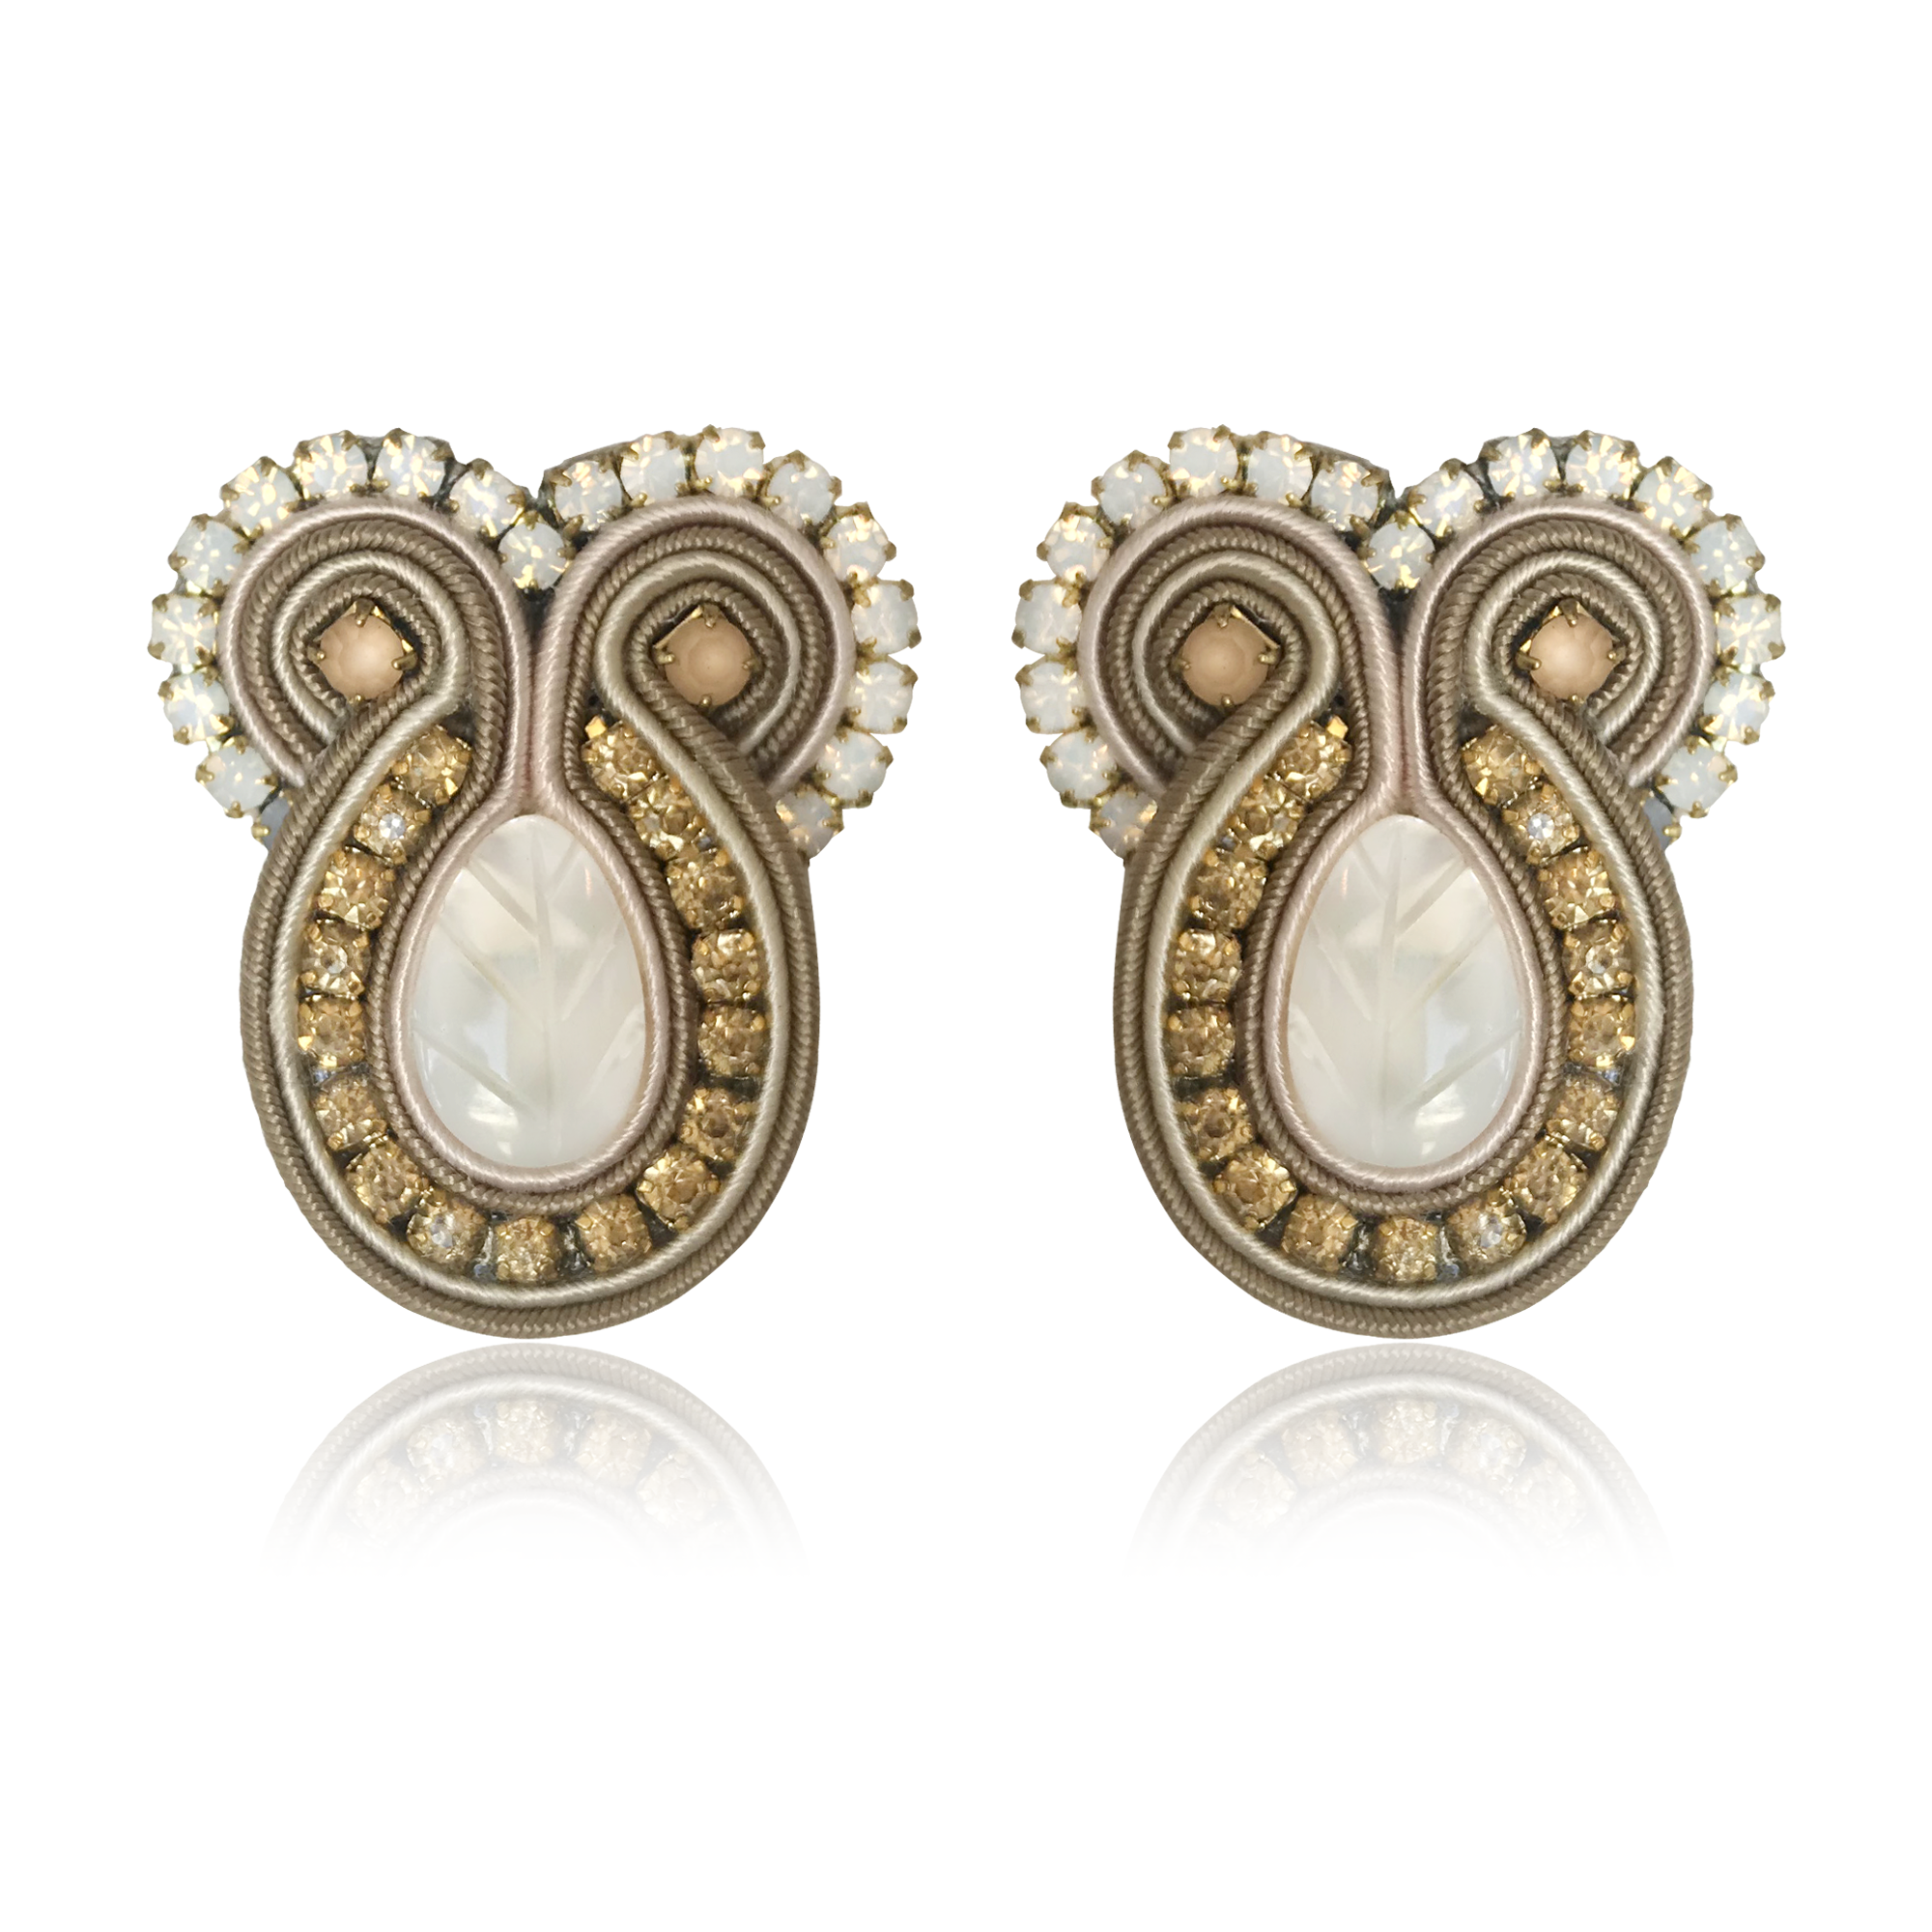 Iris Prosecco Earrings